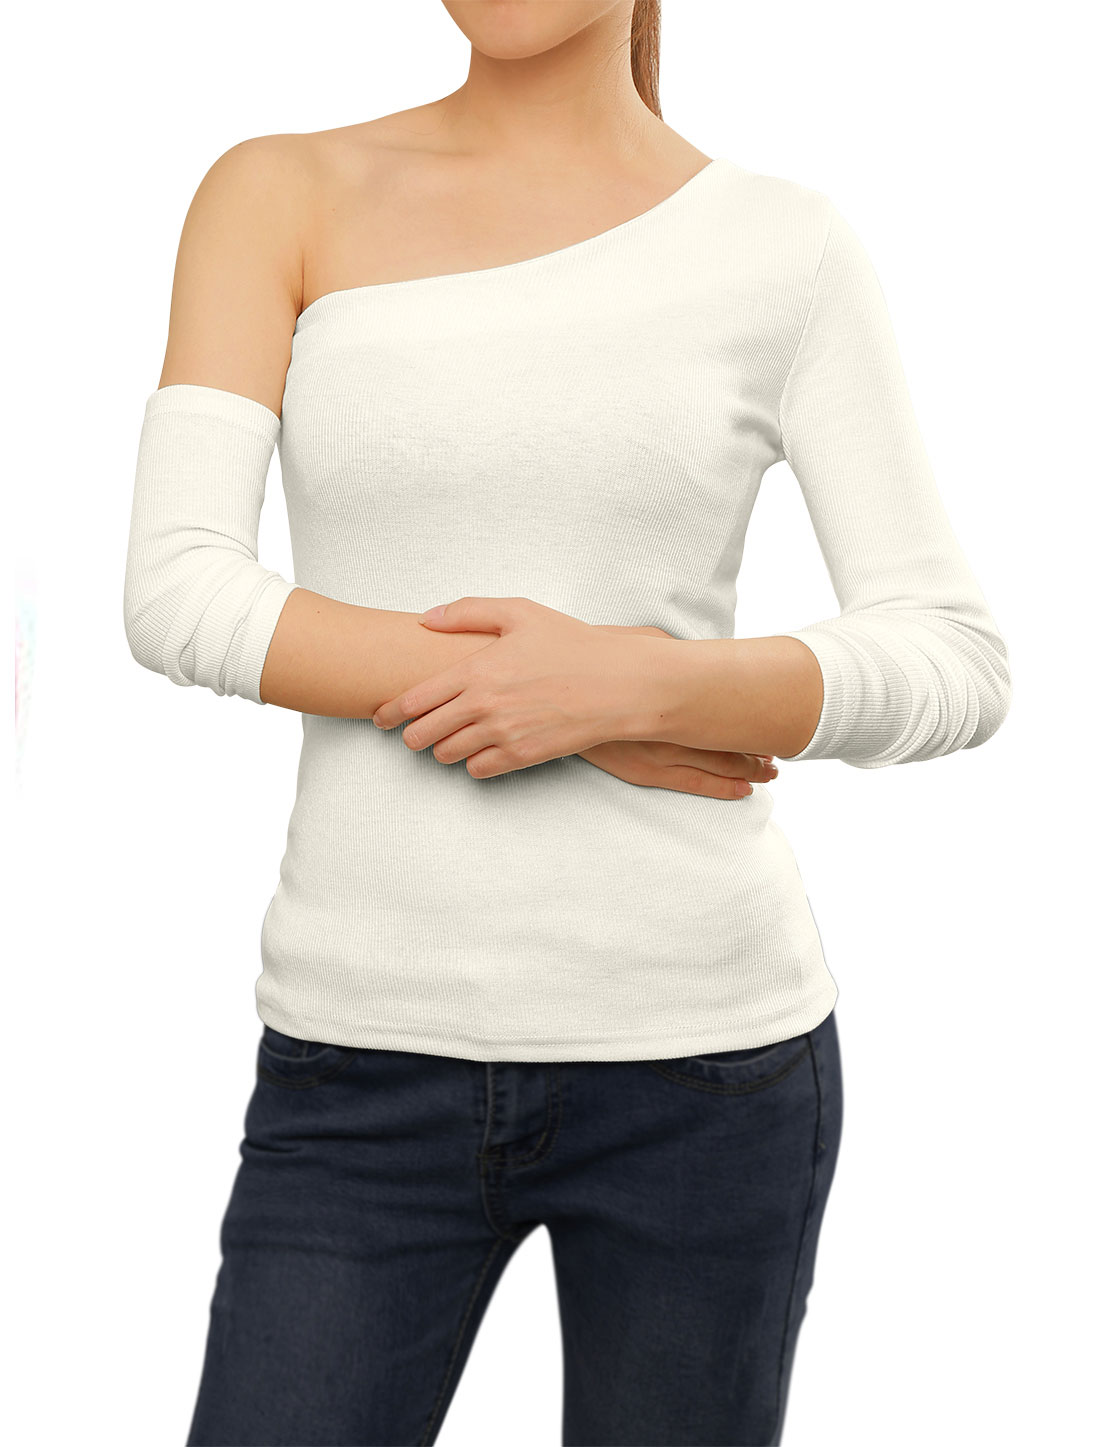 Women One Shoulder Long Sleeves Ribbed T-Shirt w Arm Warmer White XS